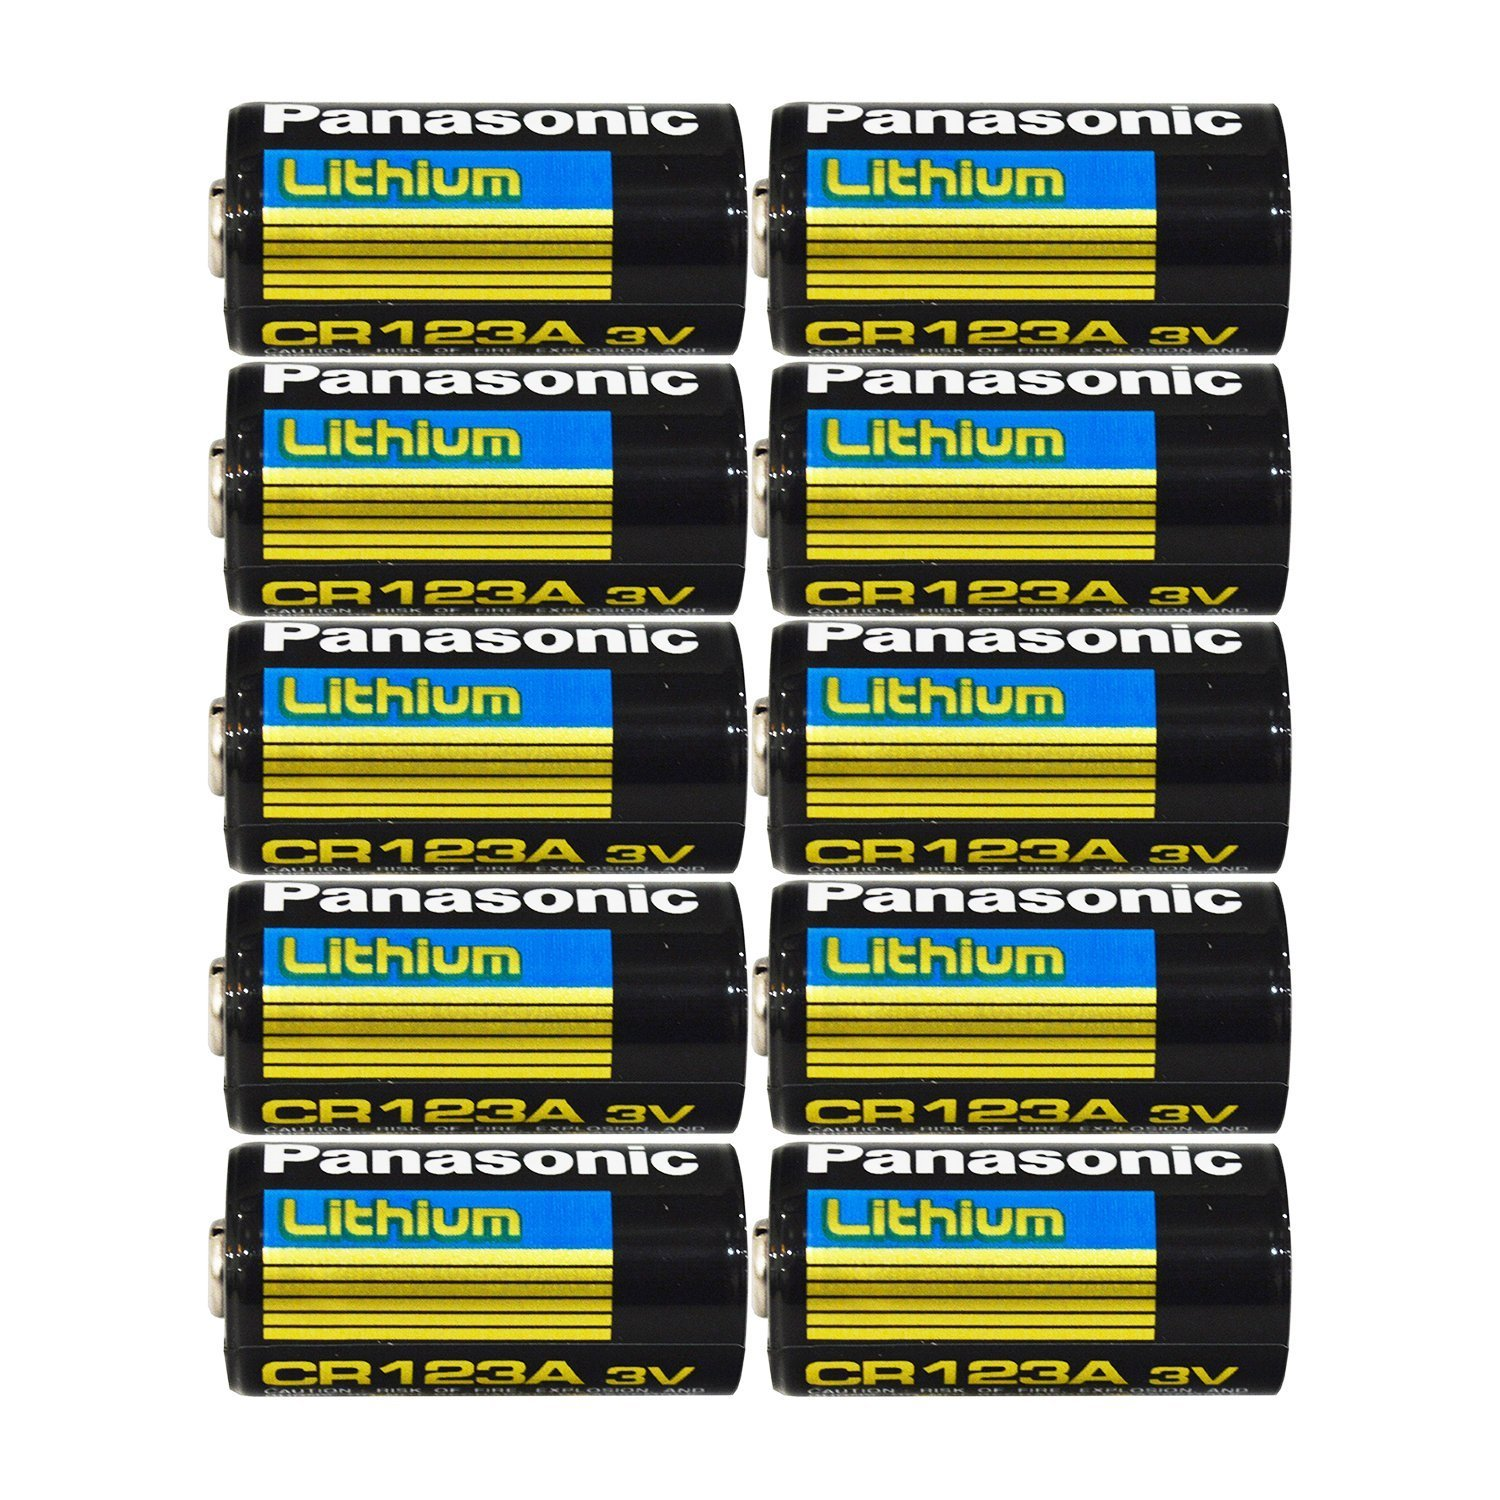 "Panasonic CR123A Lithium 3V Photo Lithium Batteries , 0.67"" Dia x 1.36"" H (17.0 mm x 34.5 mm) , black, Gold, Blue (Pack of 10)"